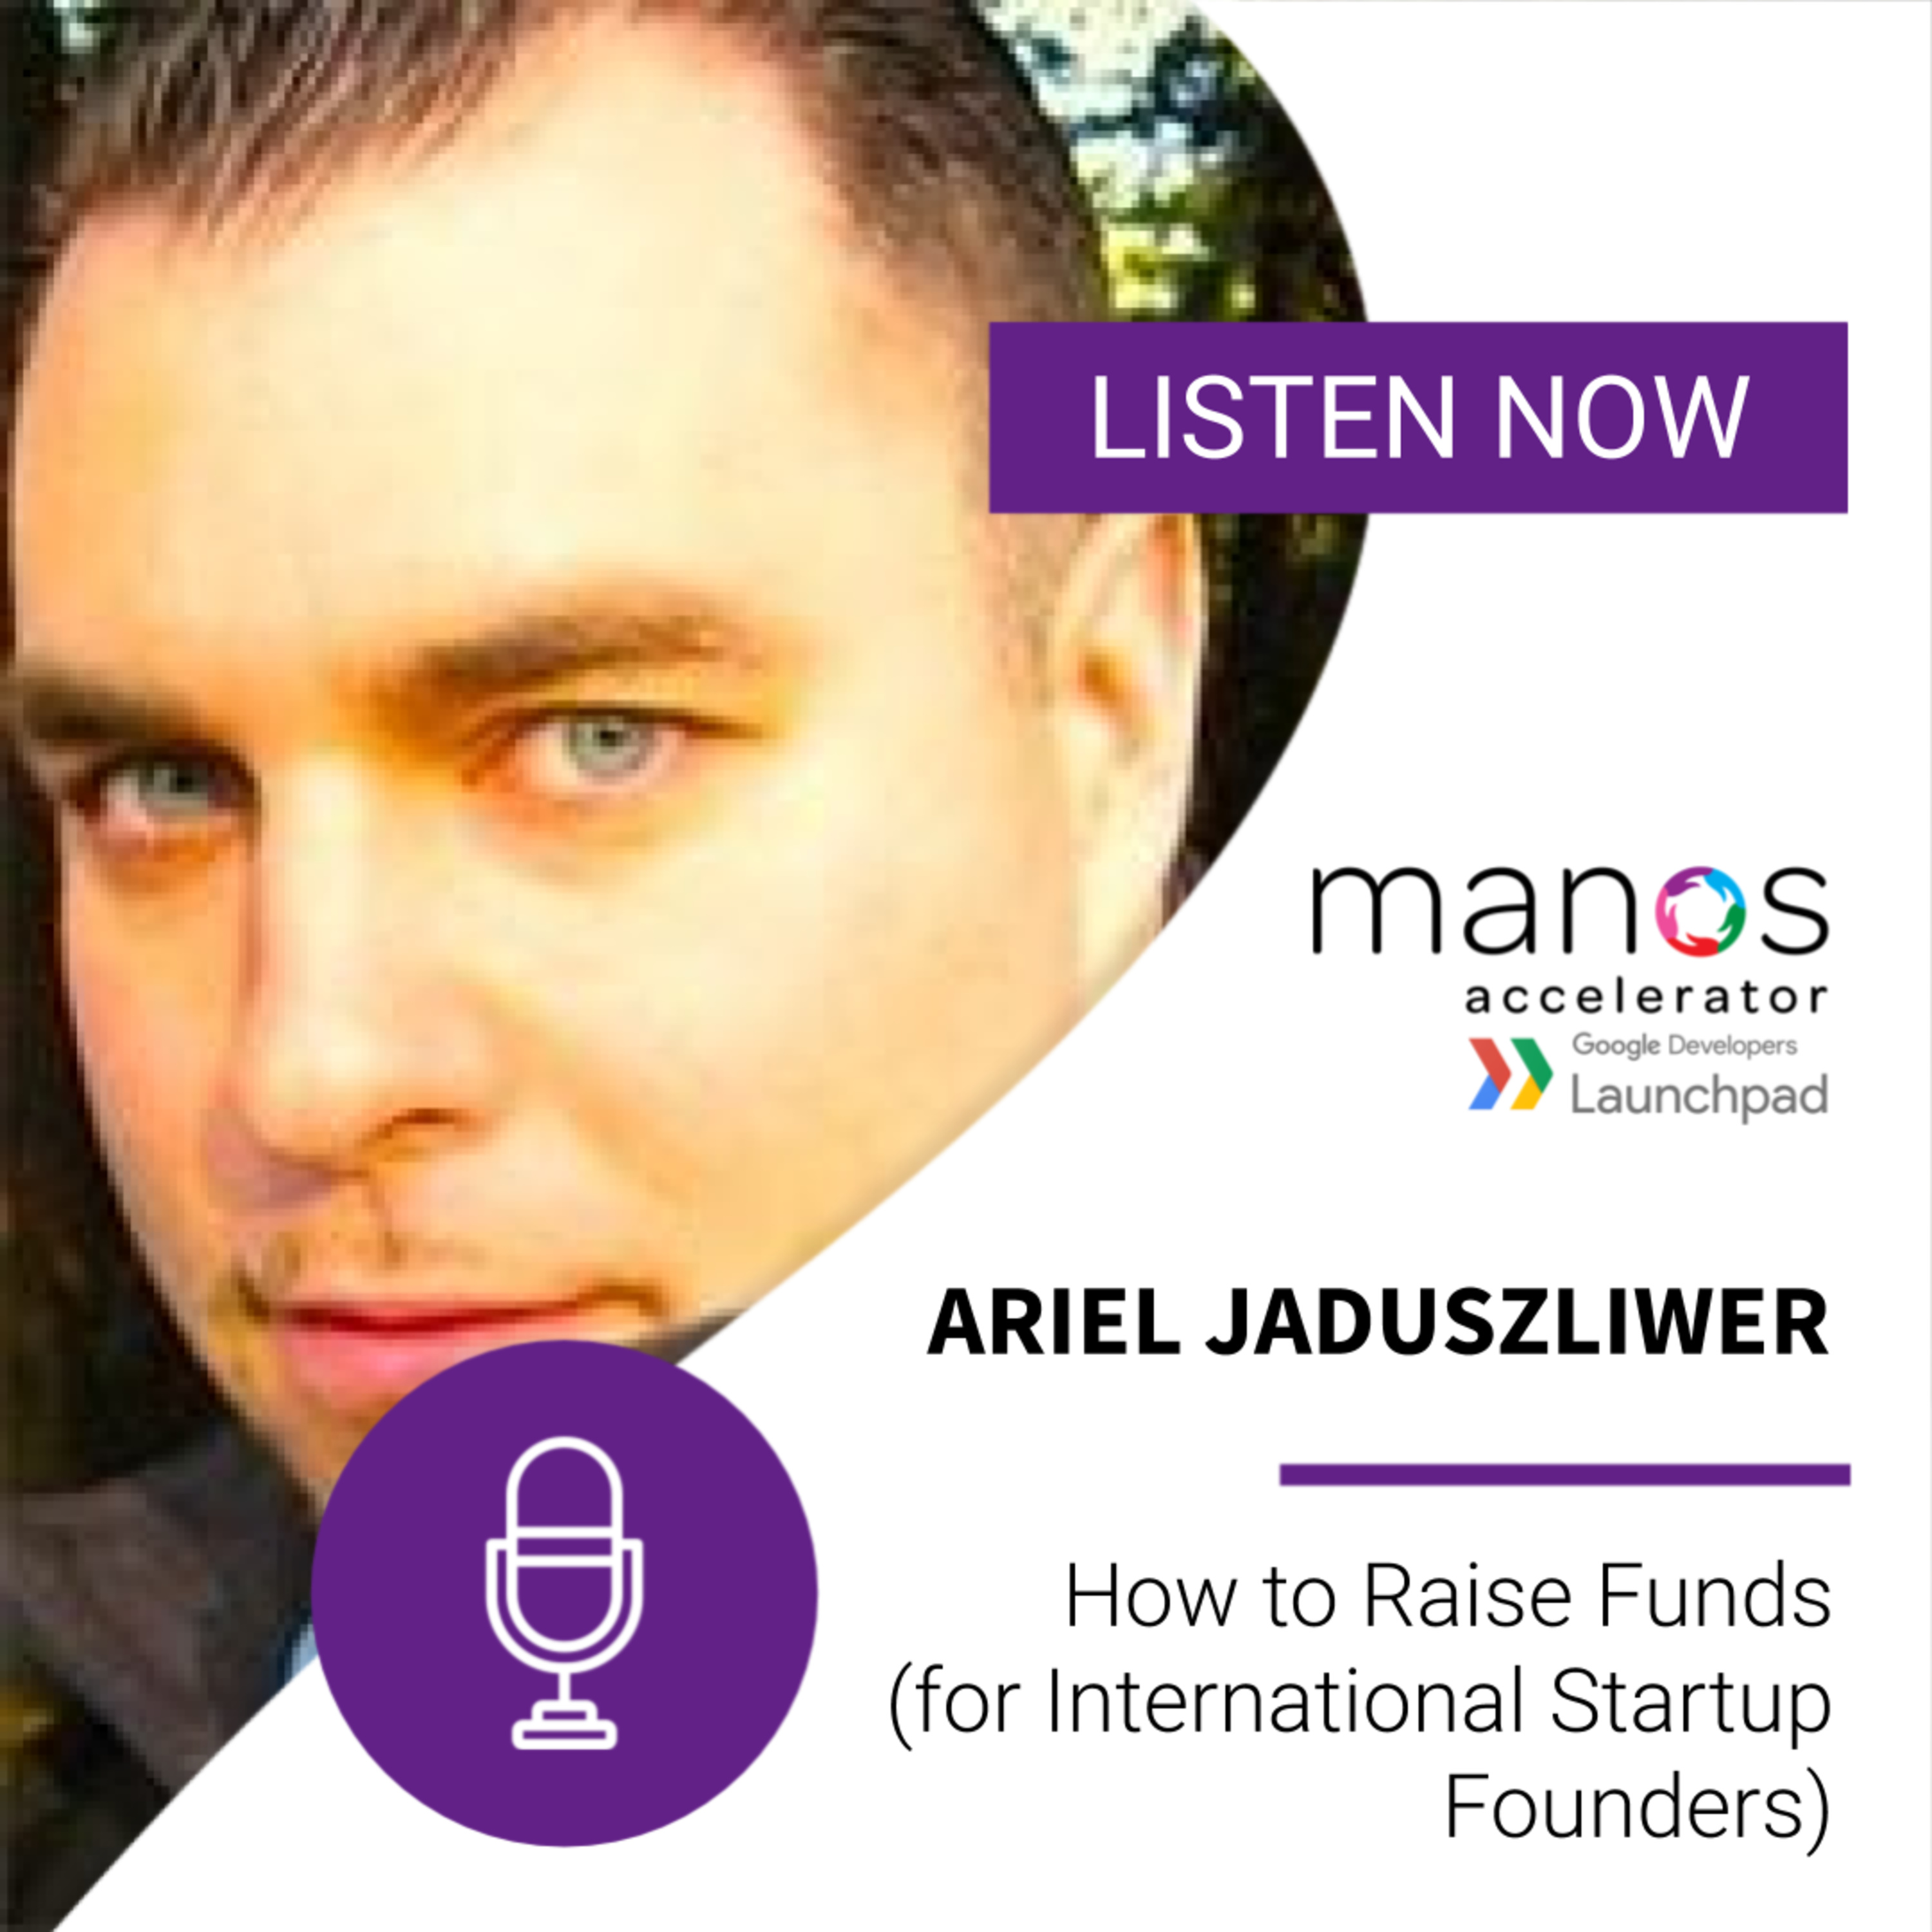 How to Raise Funds (for International Startup Founders)